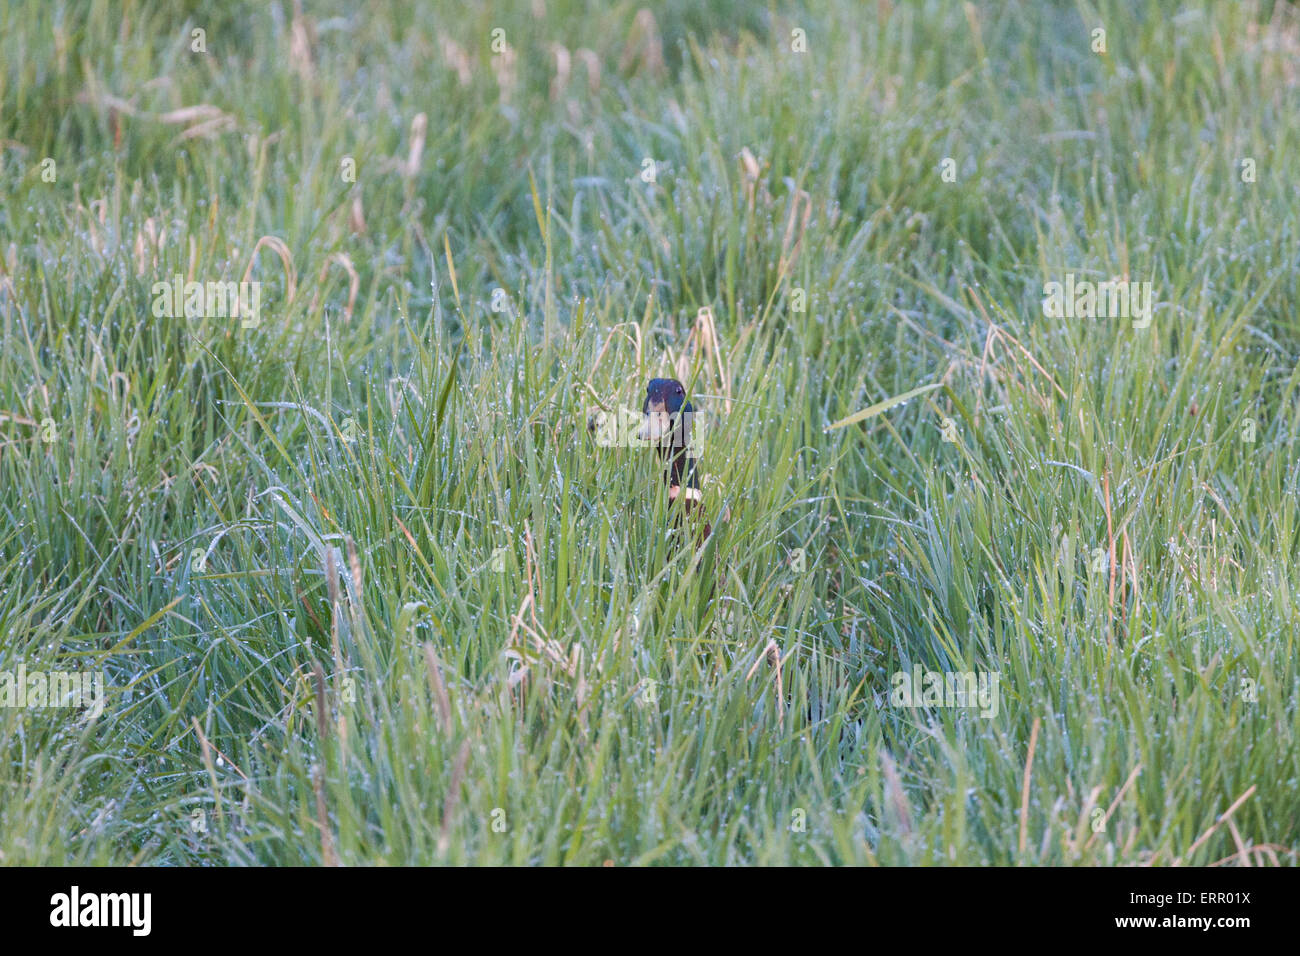 Male Mallard, Anas platyrhynchos, peeking in to camera in grass with dew drops - Stock Image